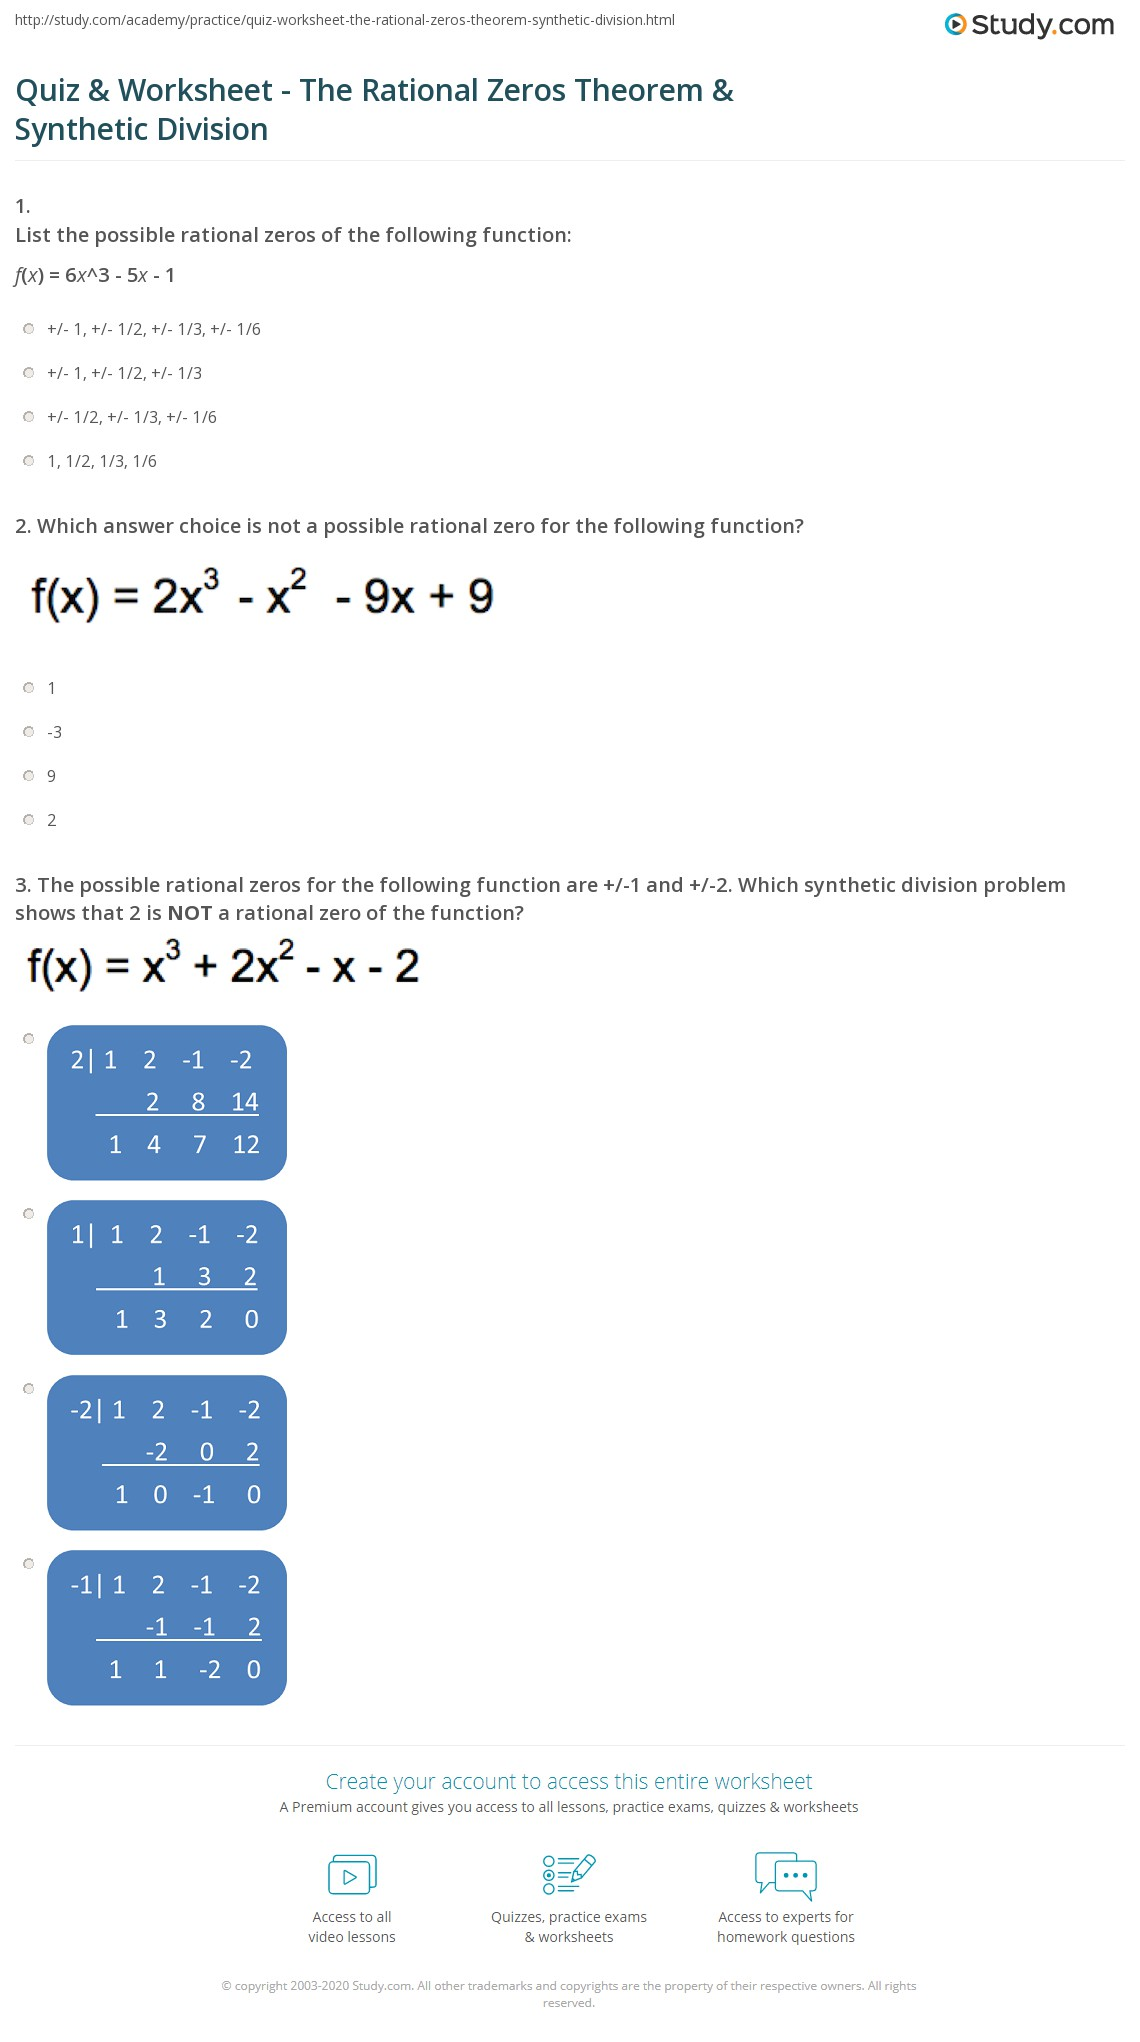 Worksheets Rational Root Theorem Worksheet quiz worksheet the rational zeros theorem synthetic division print finding using worksheet